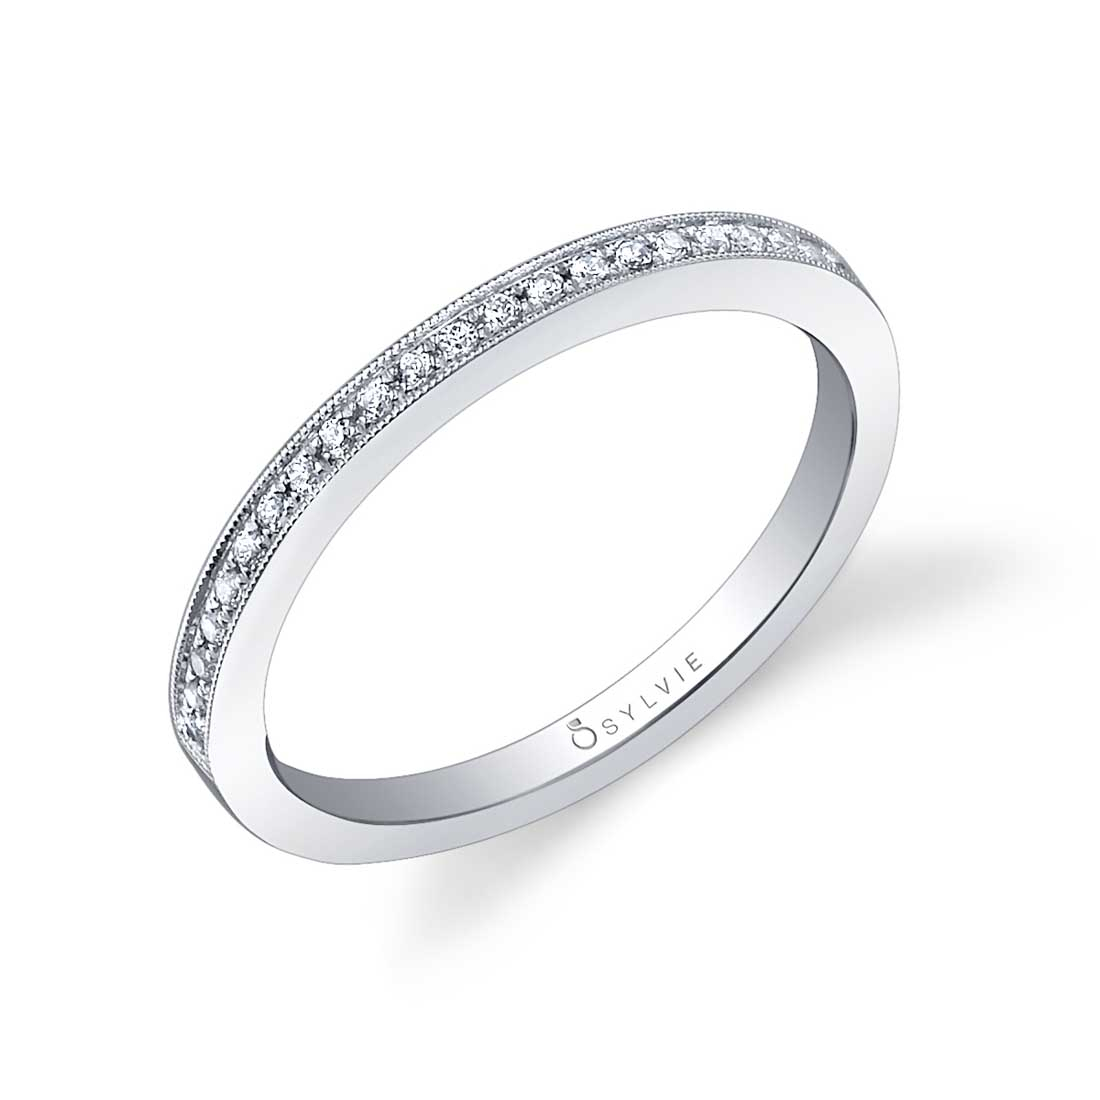 White Gold Diamond Wedding Band With Milgrain Accents Within Best And Newest Diamond Milgrain Anniversary Bands In White Gold (View 5 of 25)